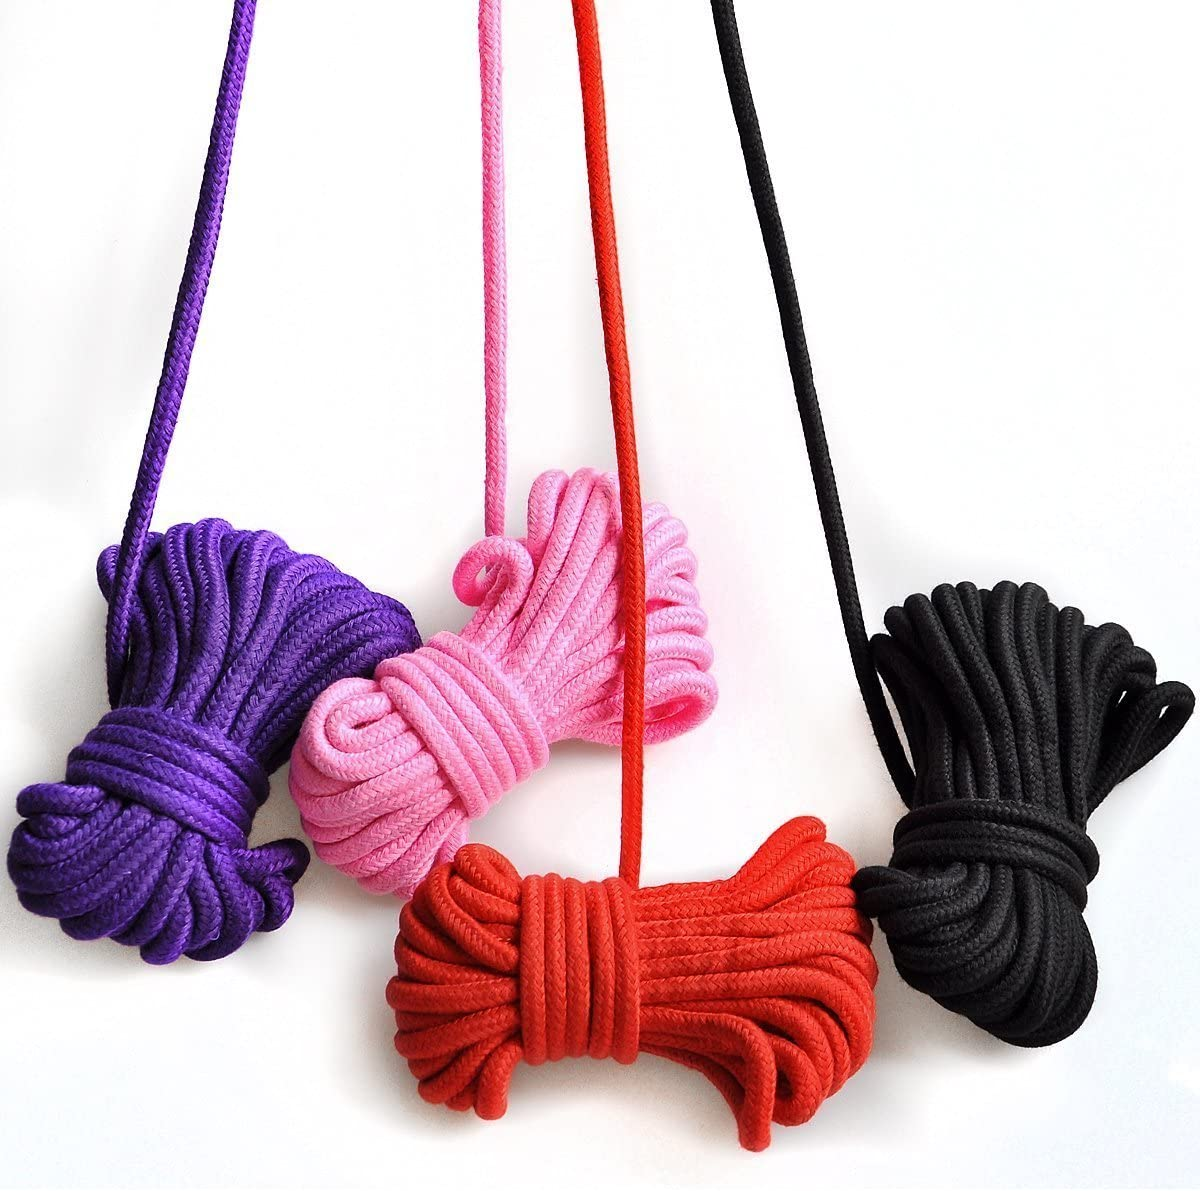 Soft Cotton Rope 32 Foot /× 2//3 Pack All Purpose Strong Multifunctional Rope Durable Long Strap